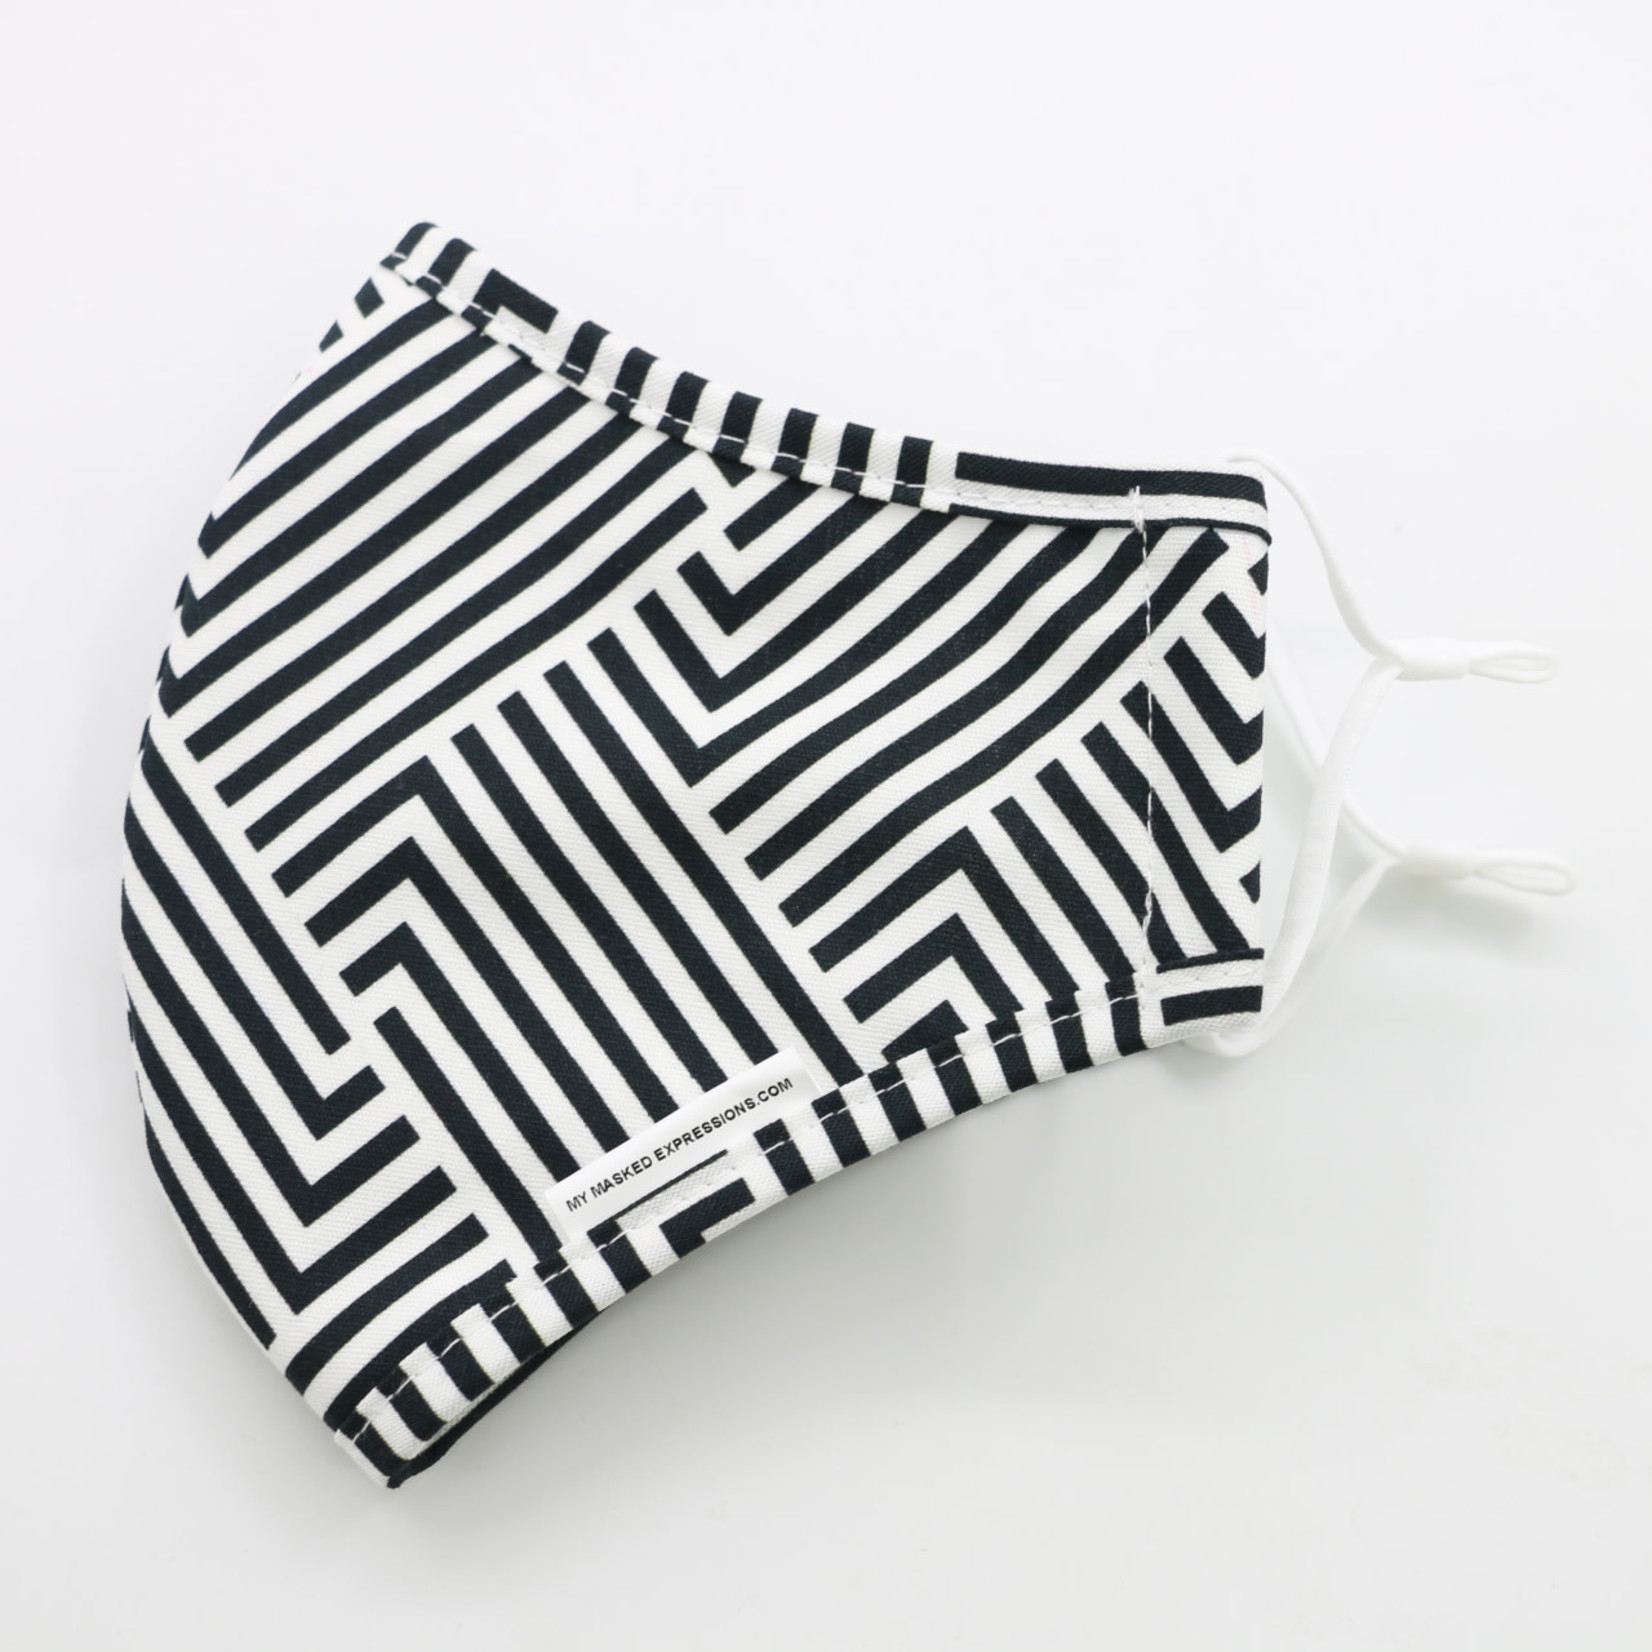 My Masked Expressions Adult Size Mask, Black and White Stripes